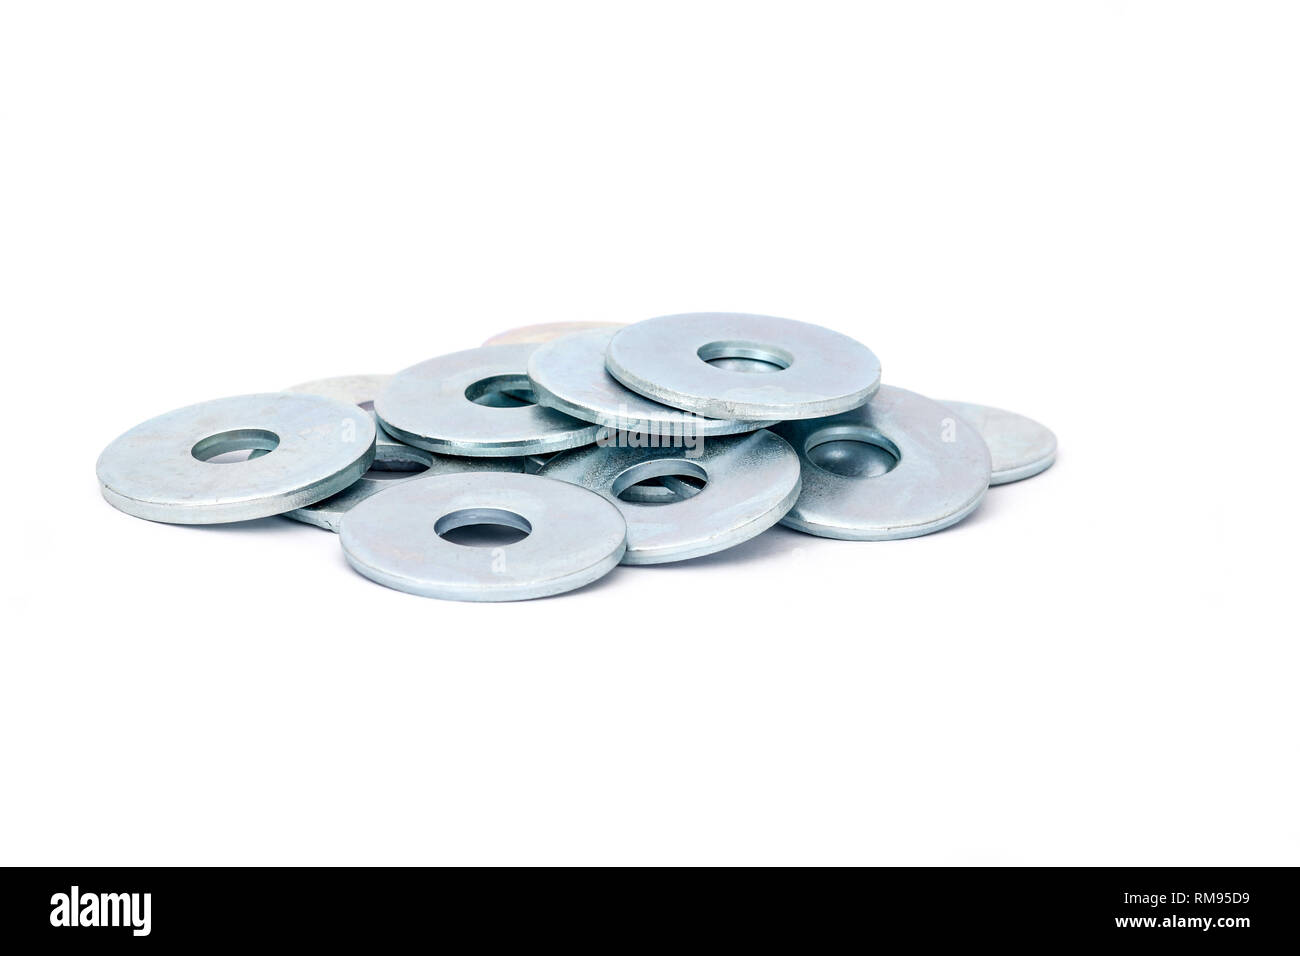 Stack of metallic steel fender washers for wood, isolated on white background - Stock Image